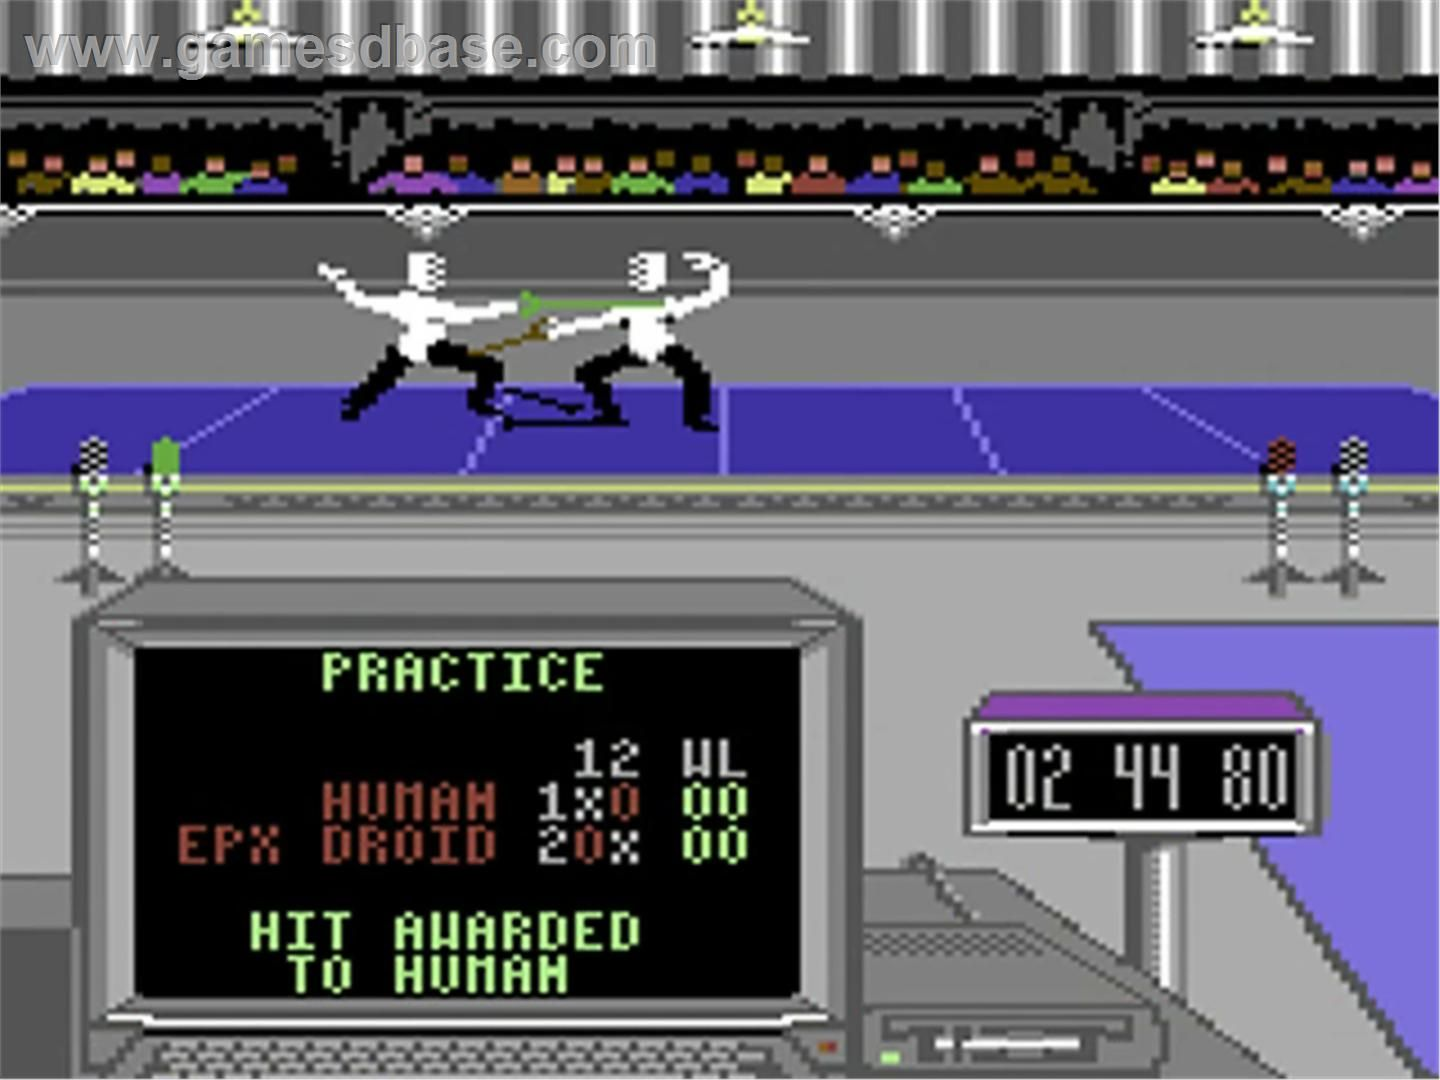 Summer Games II (Commodore 64)      best sports game on C64